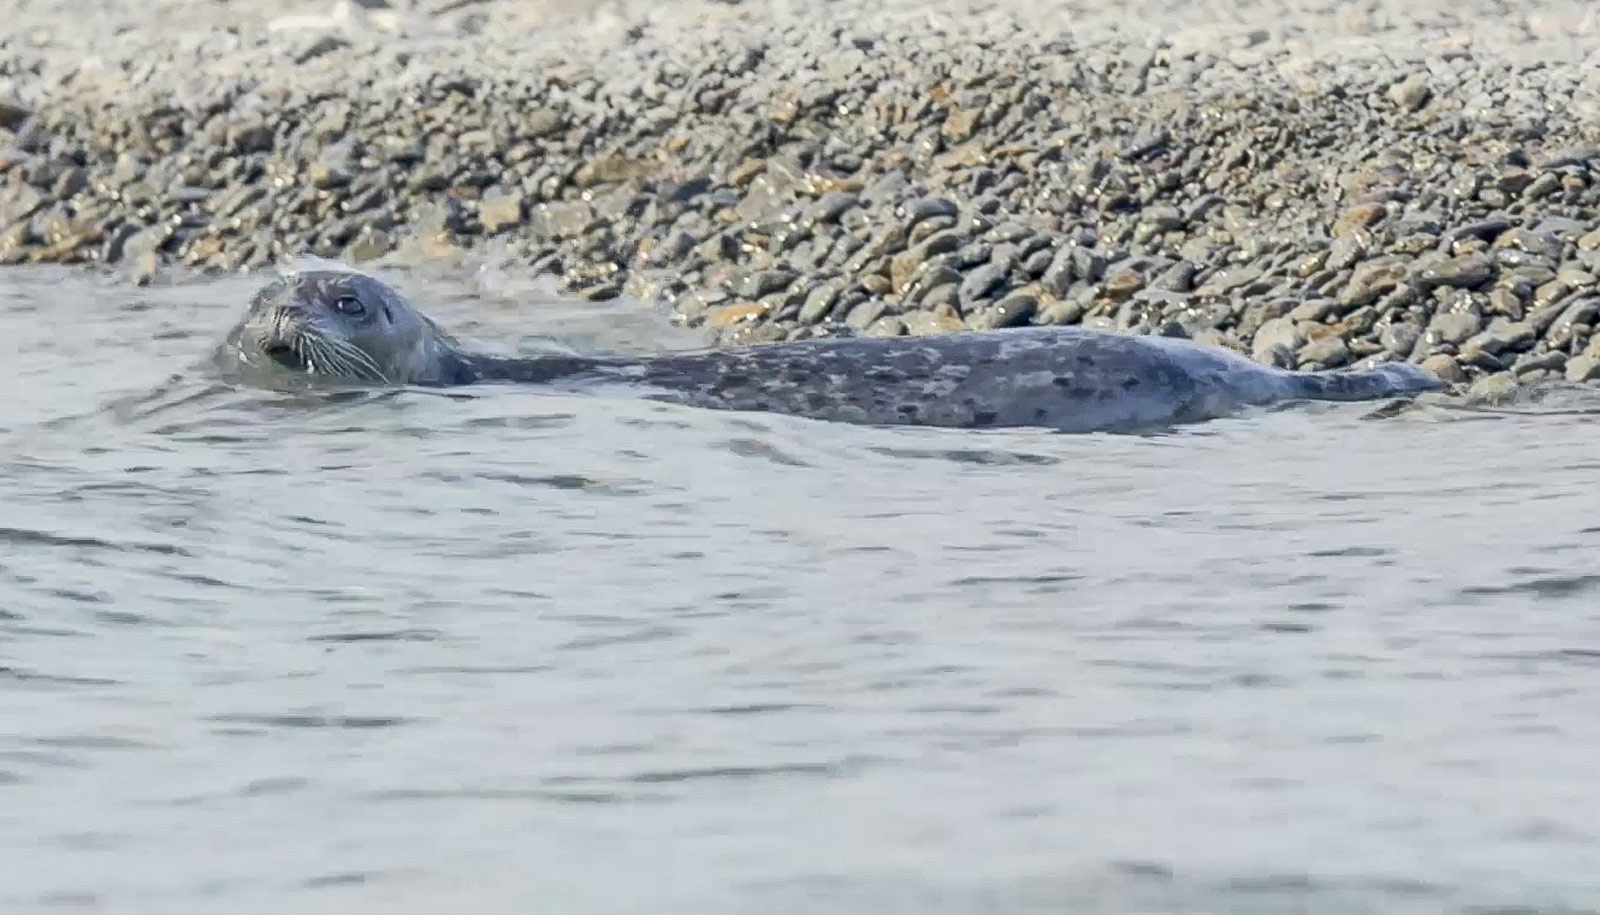 seal in water by gravel beach